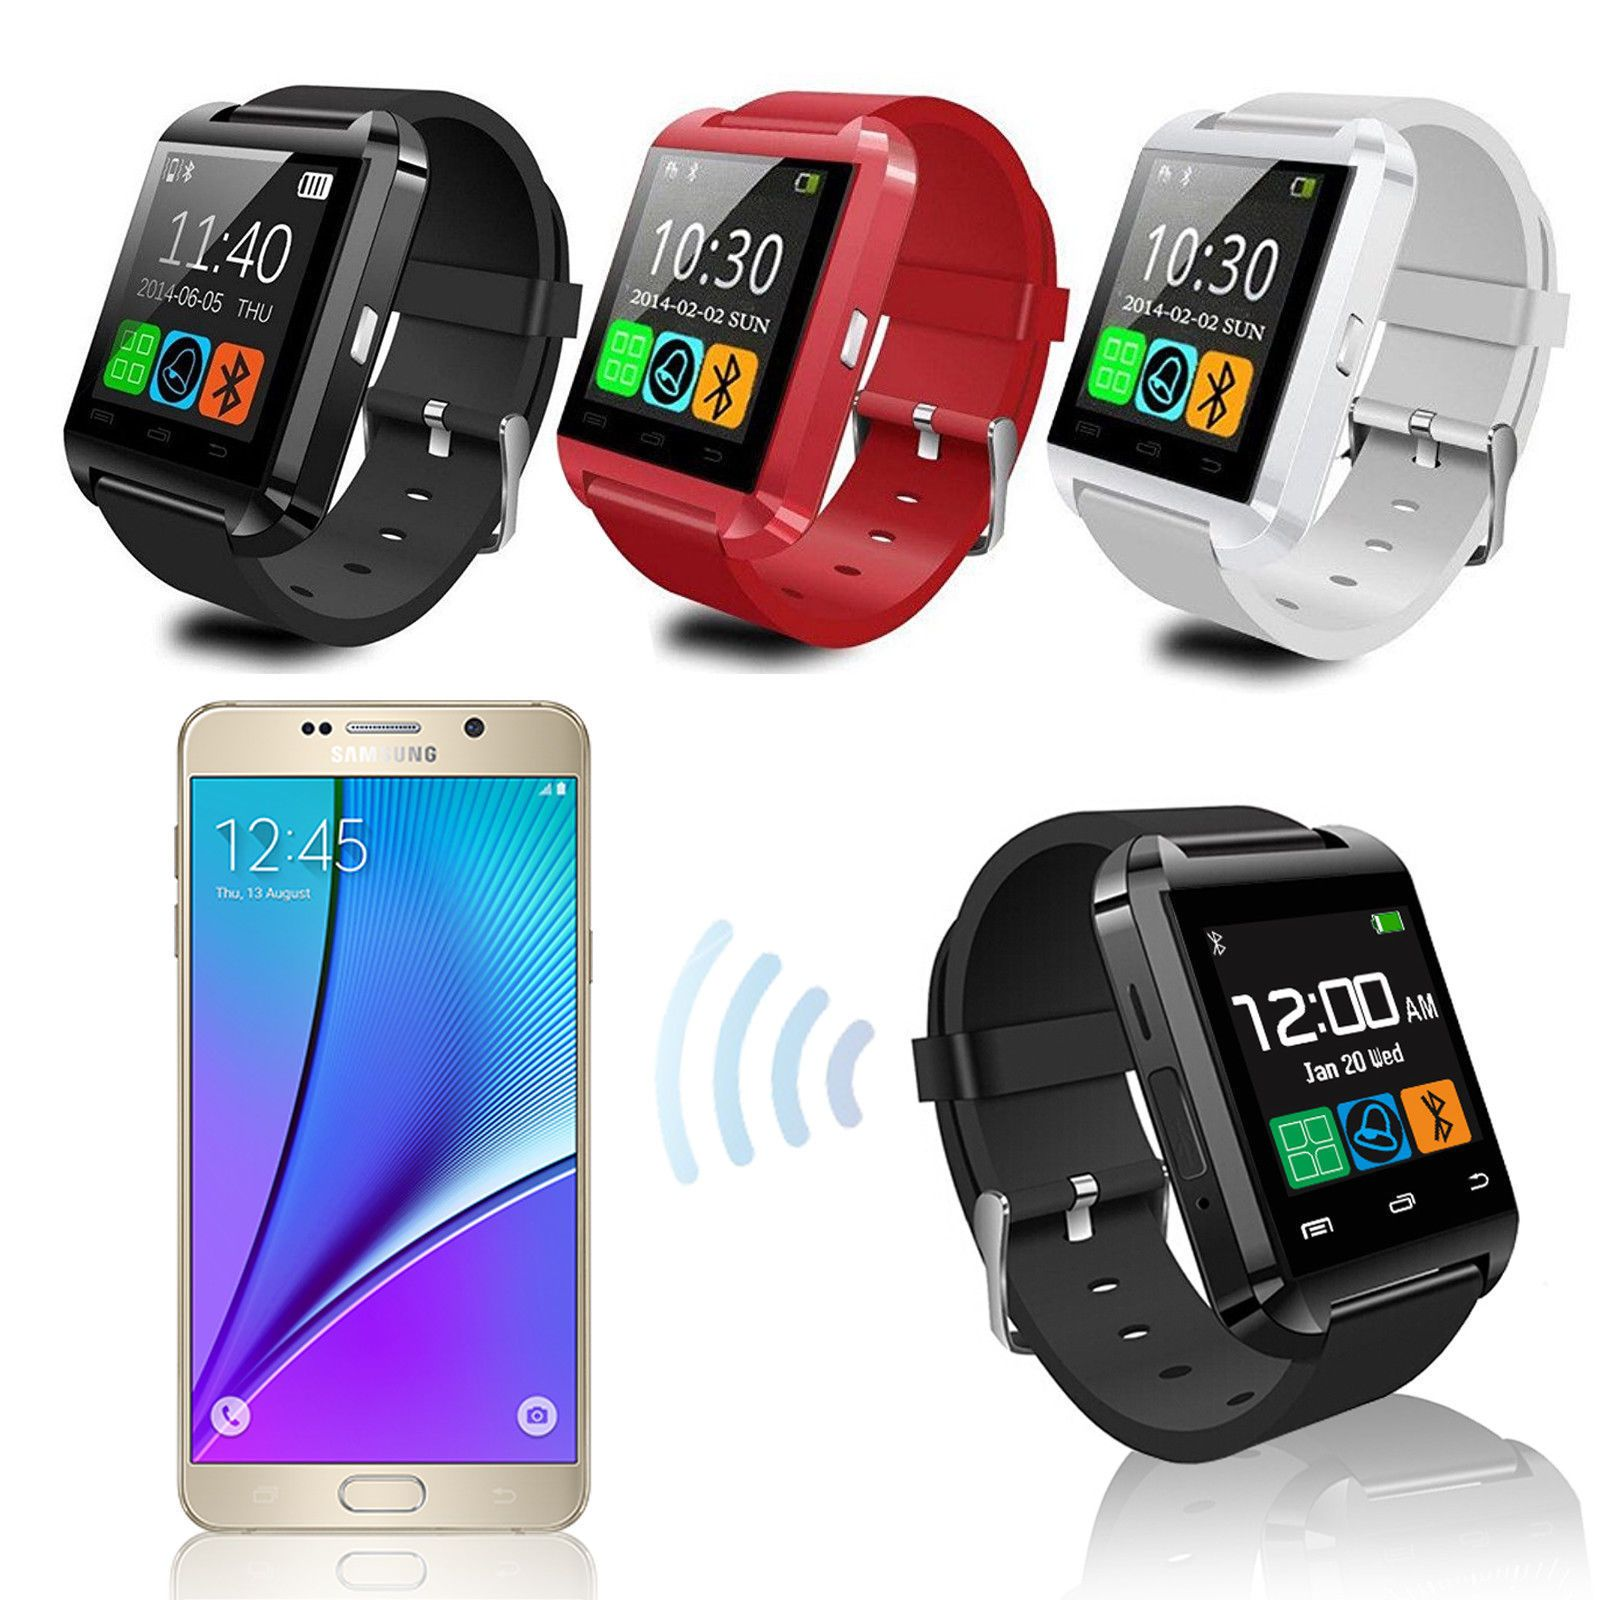 Bluetooth Smart Wrist Watch Phone Mate For Android IOS Samsung iPhone LG Item specifics Condition New A brand new unused unopened undamaged item in its